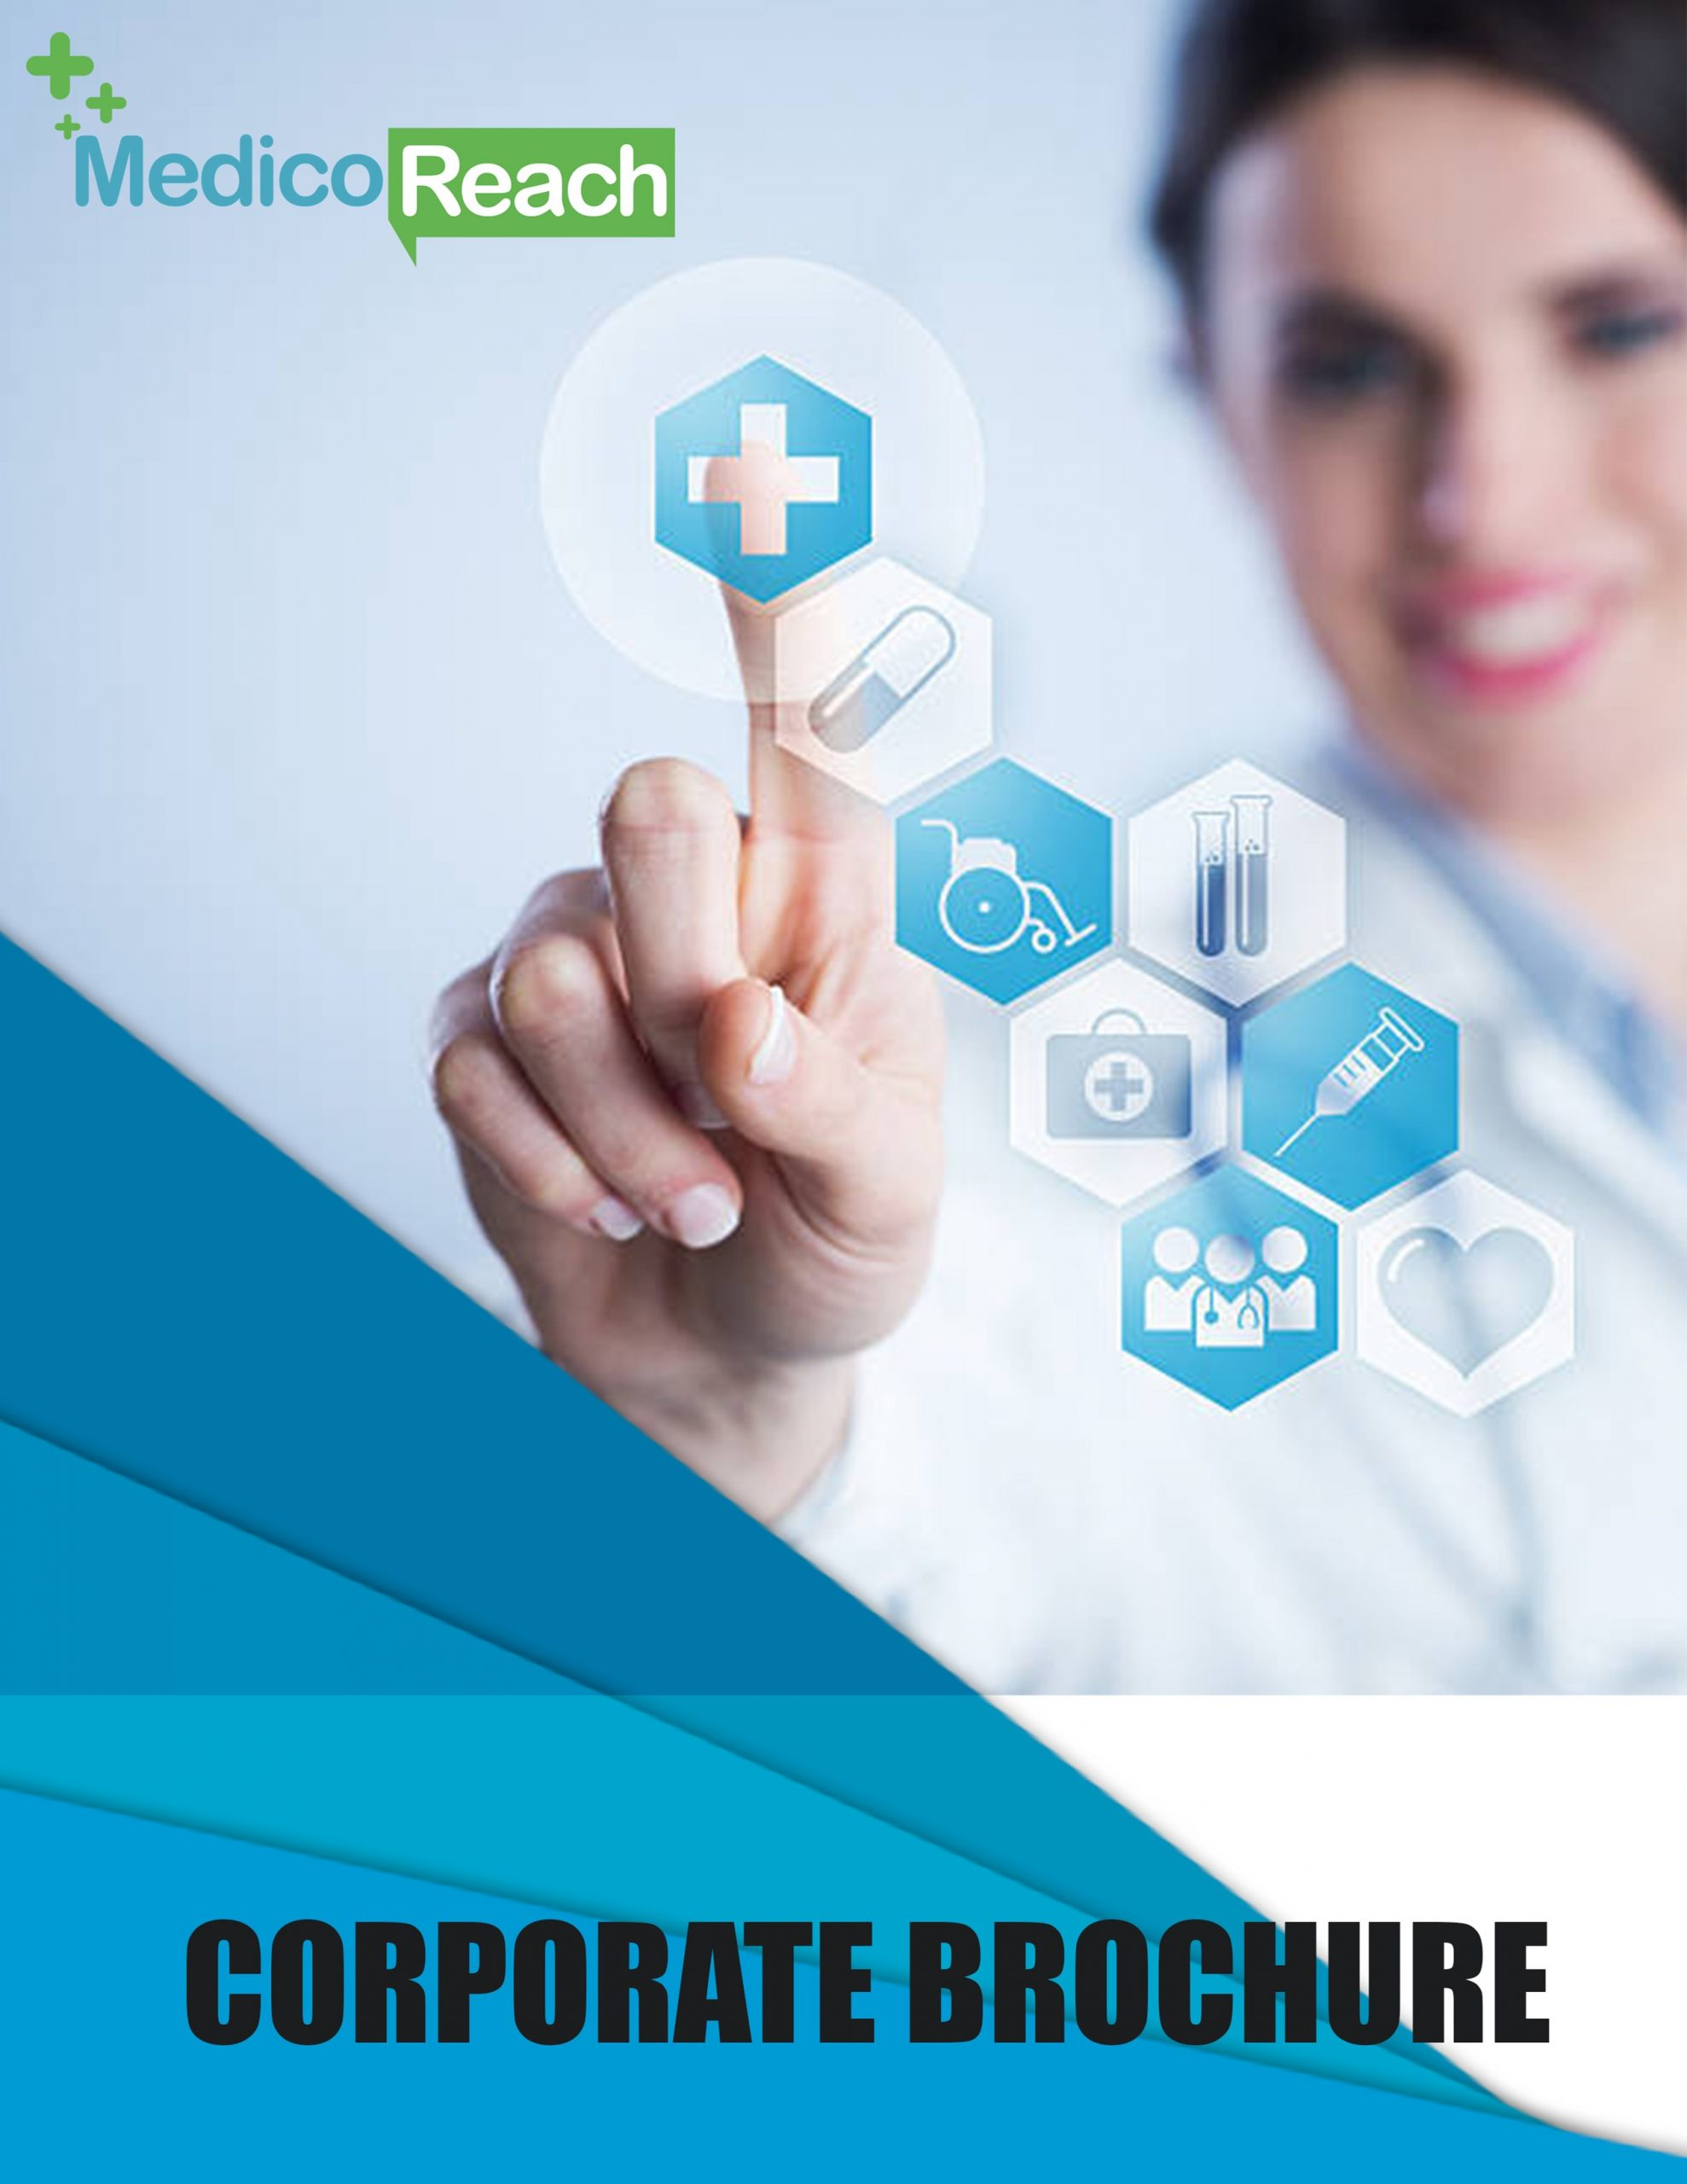 Corporate Brochure - Healthcare Marketing Solutions for Effective B2B Communications